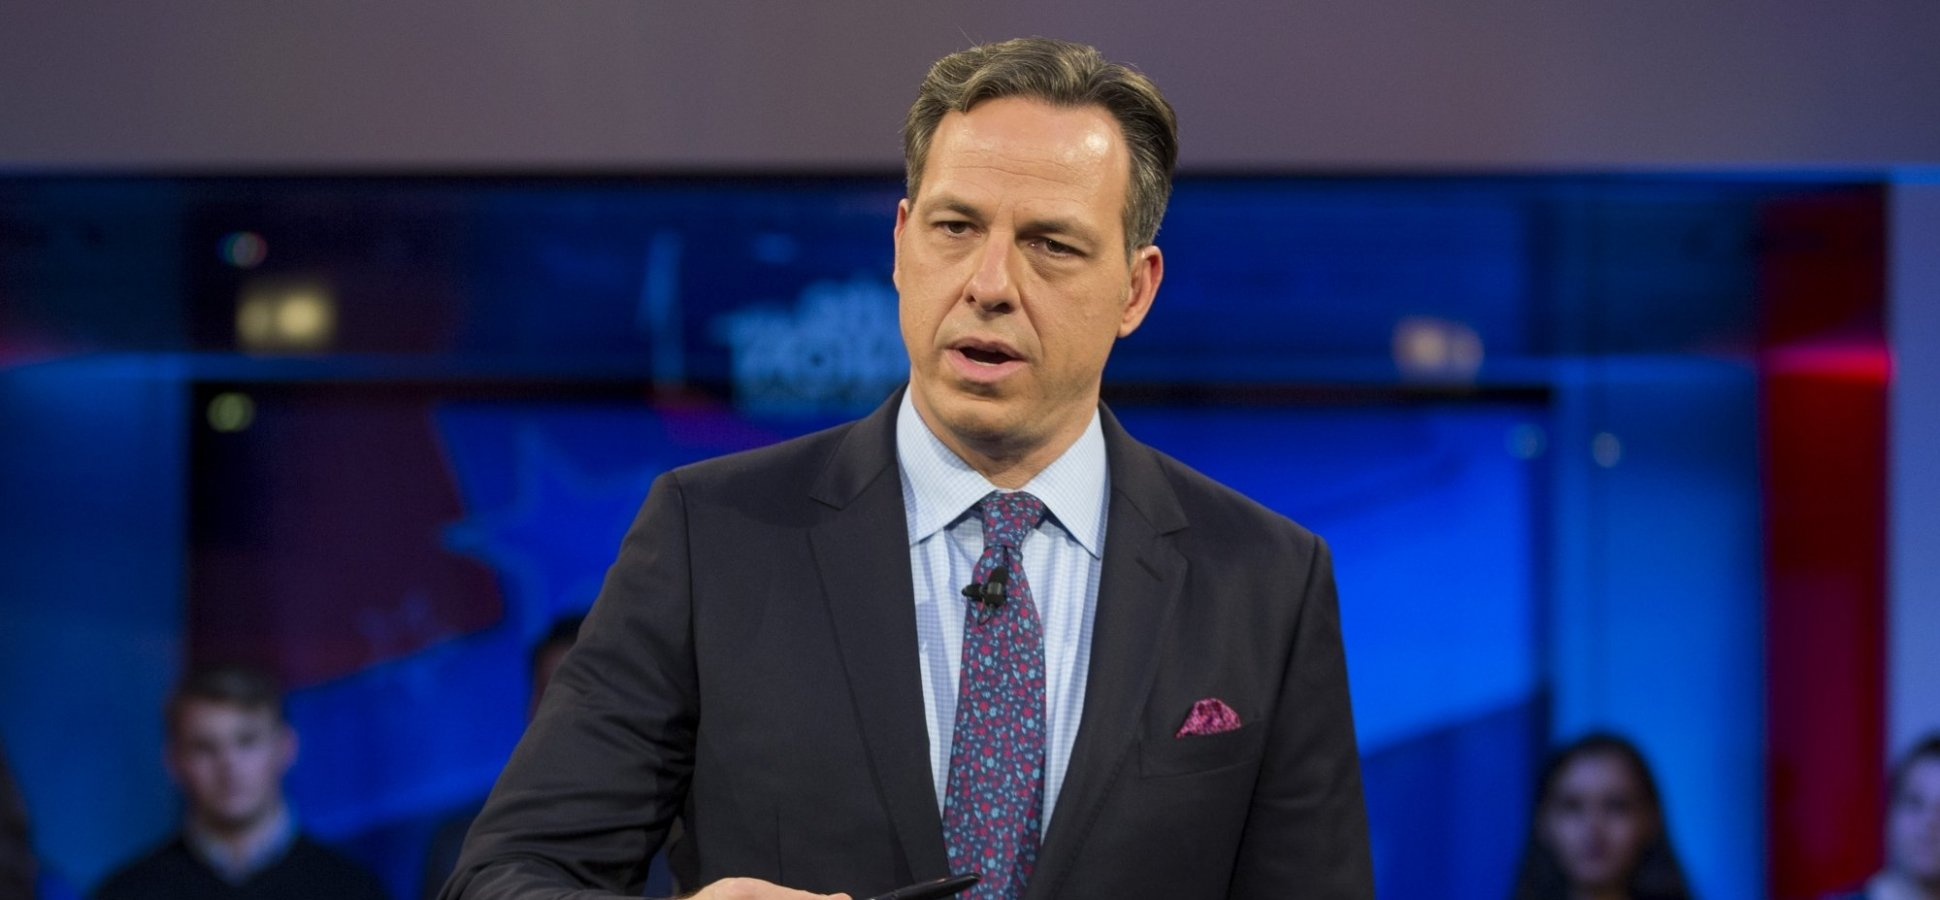 CNN's Jake Tapper Gives Genius Career Advice. Here Are 6 Ways to Build On It